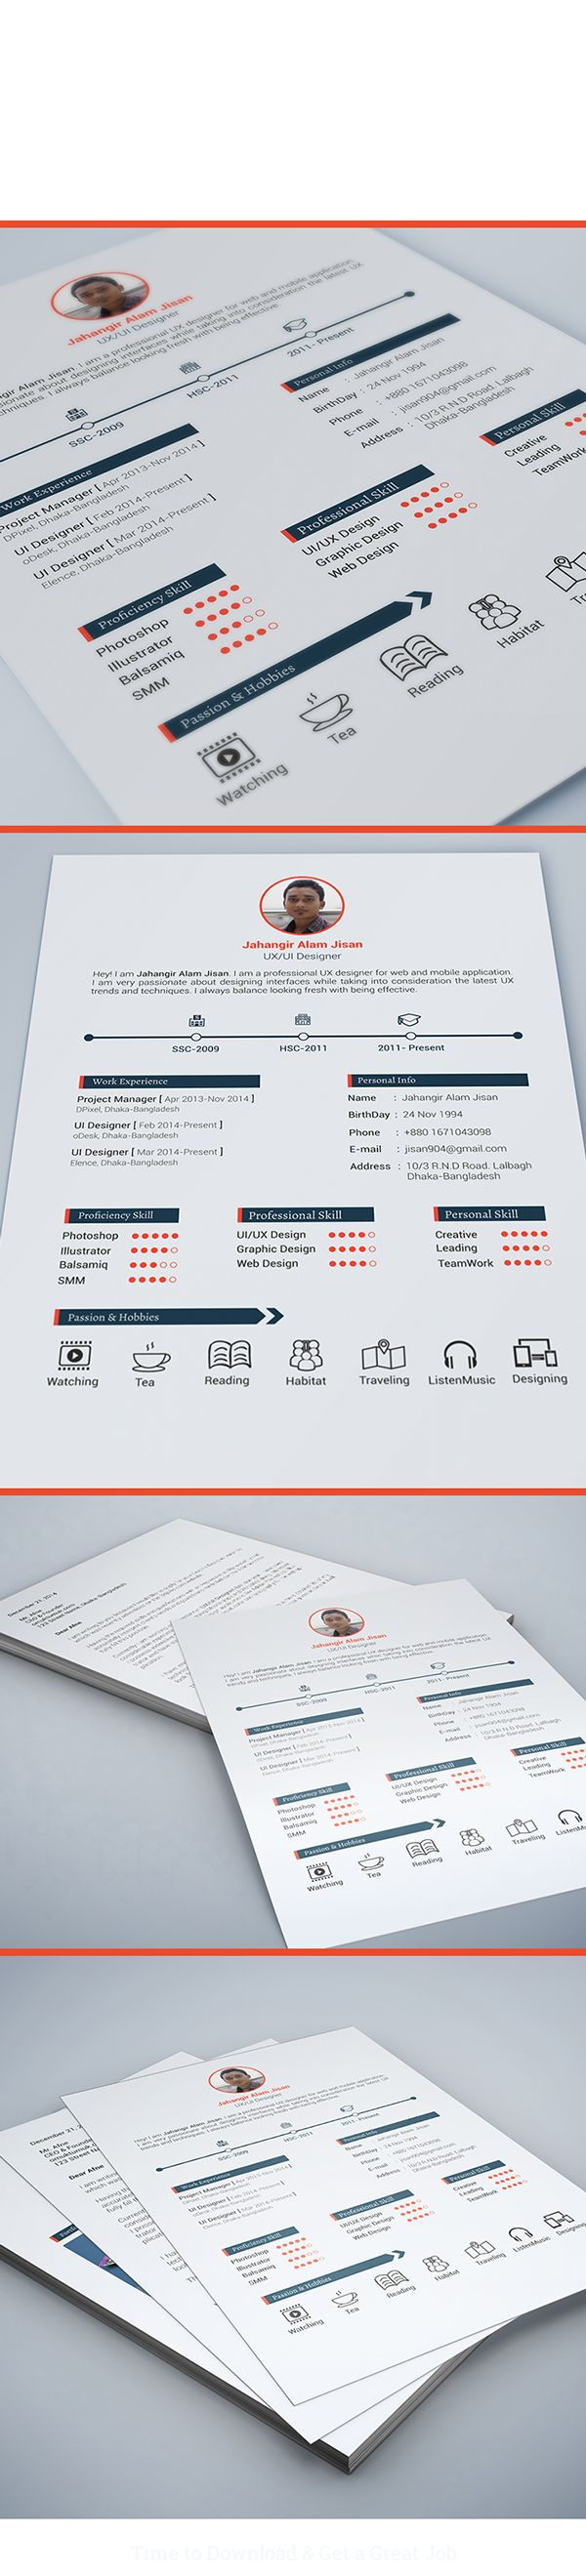 best ideas about resume resume template resume template 3 page on behance